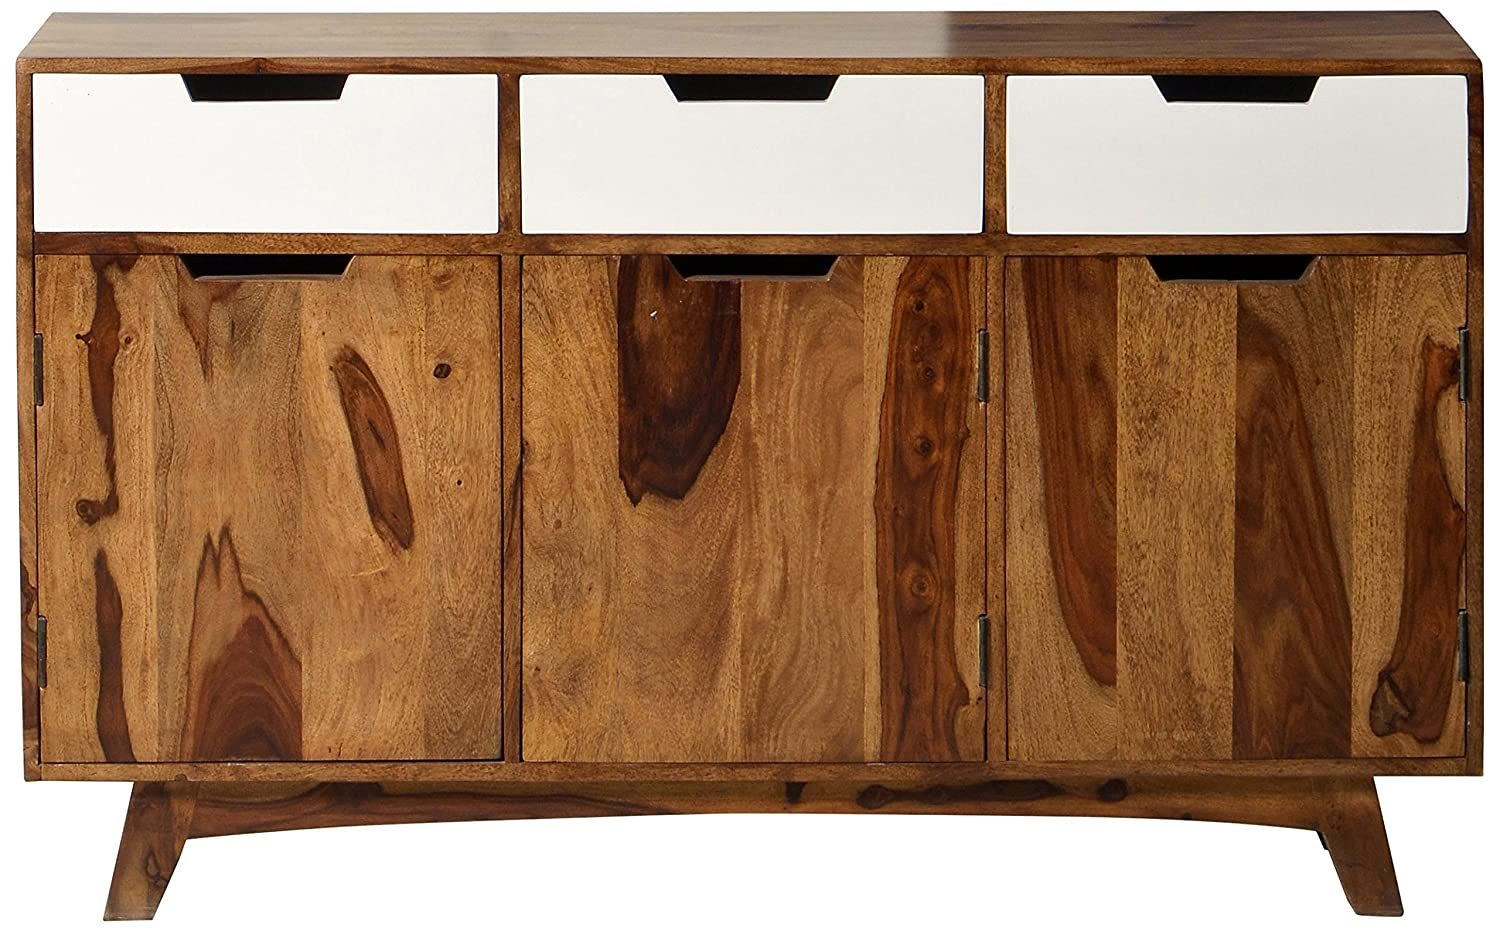 SIT-Möbel 7703-10 Sideboard Sixties, antikfinish, 140 x 40 90 cm, braun / weiß